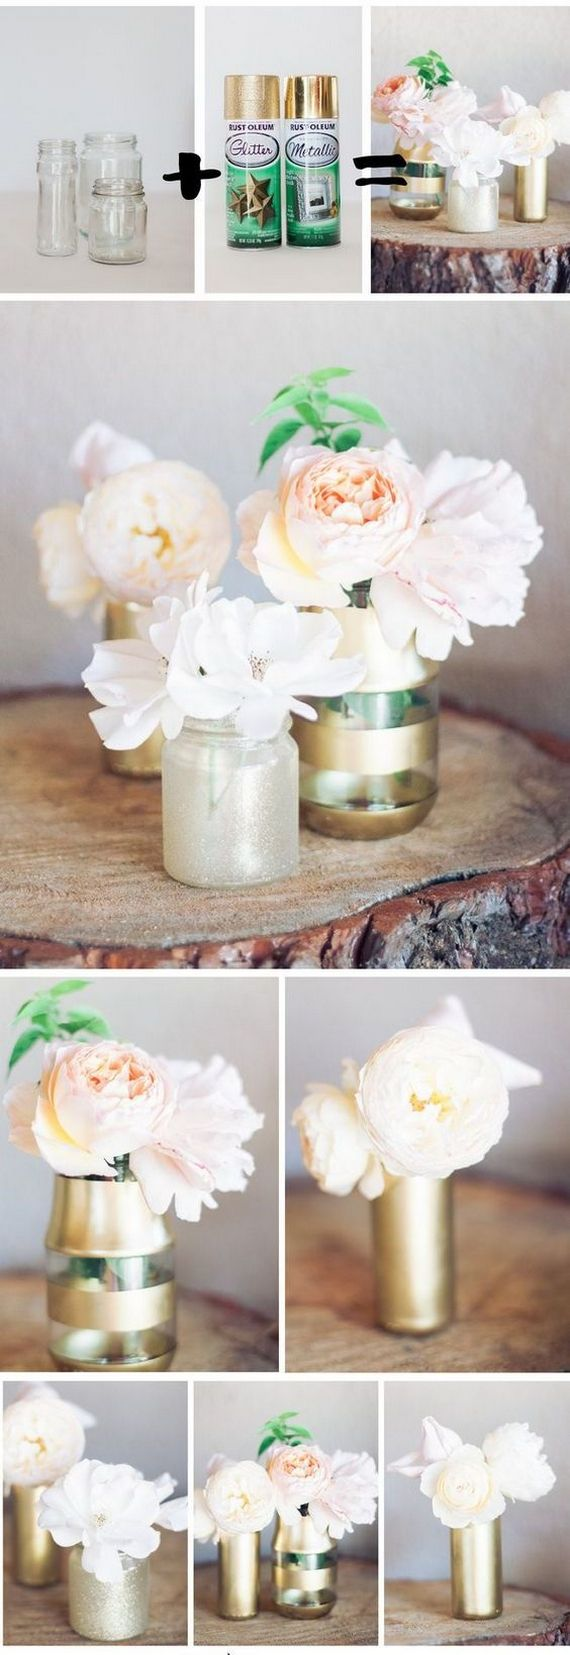 845 best DIY images on Pinterest | Table centers, Wedding ...